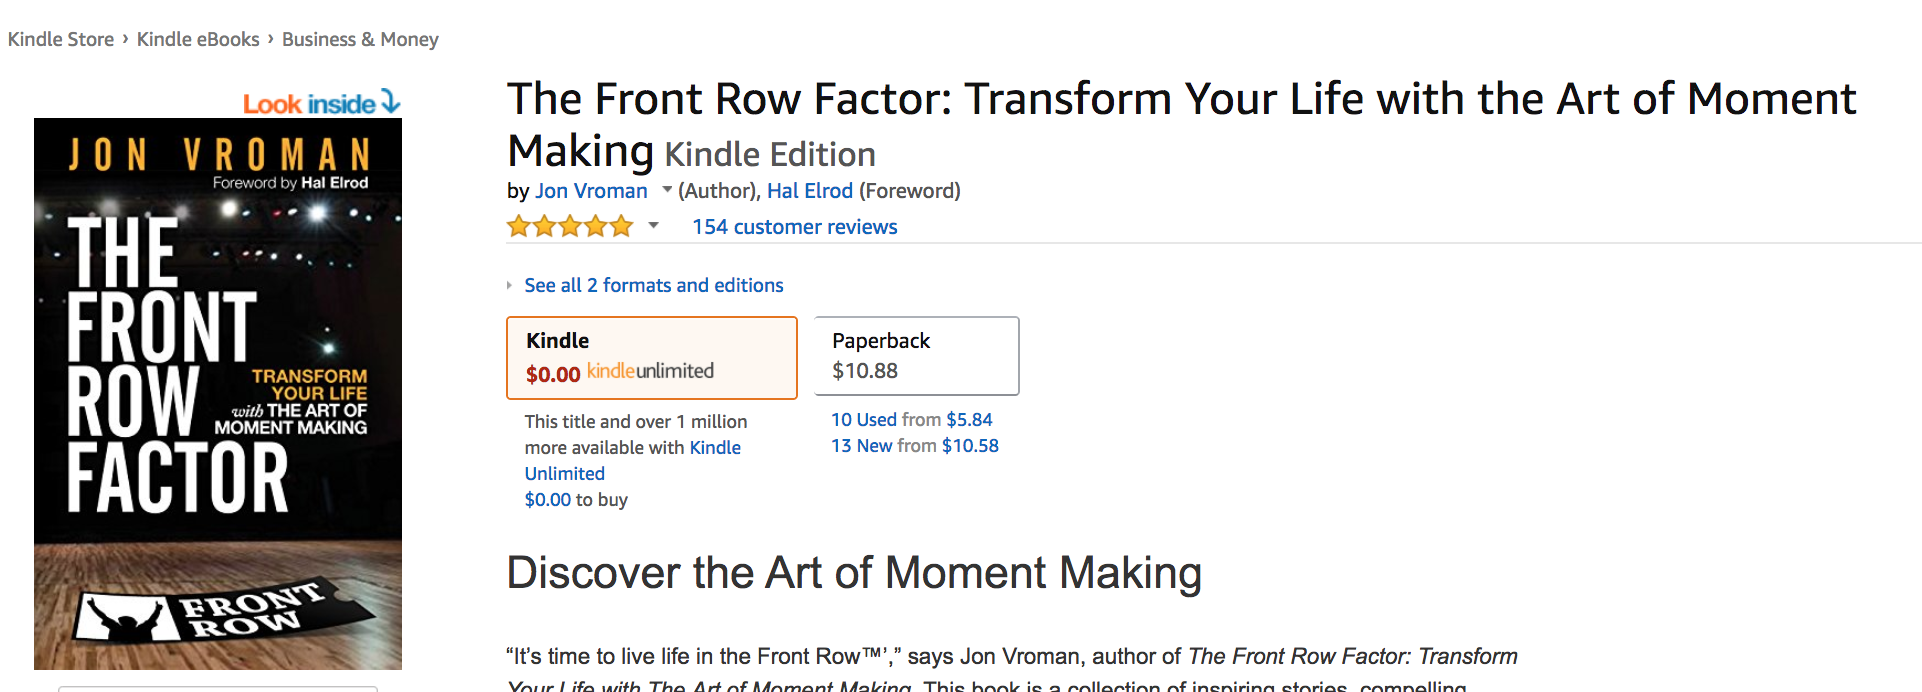 My self publishing blueprint emekas clear and concise coaching unquestionably helped my book become a bestseller on amazon within 24 hours which carried through for ongoing sales malvernweather Gallery